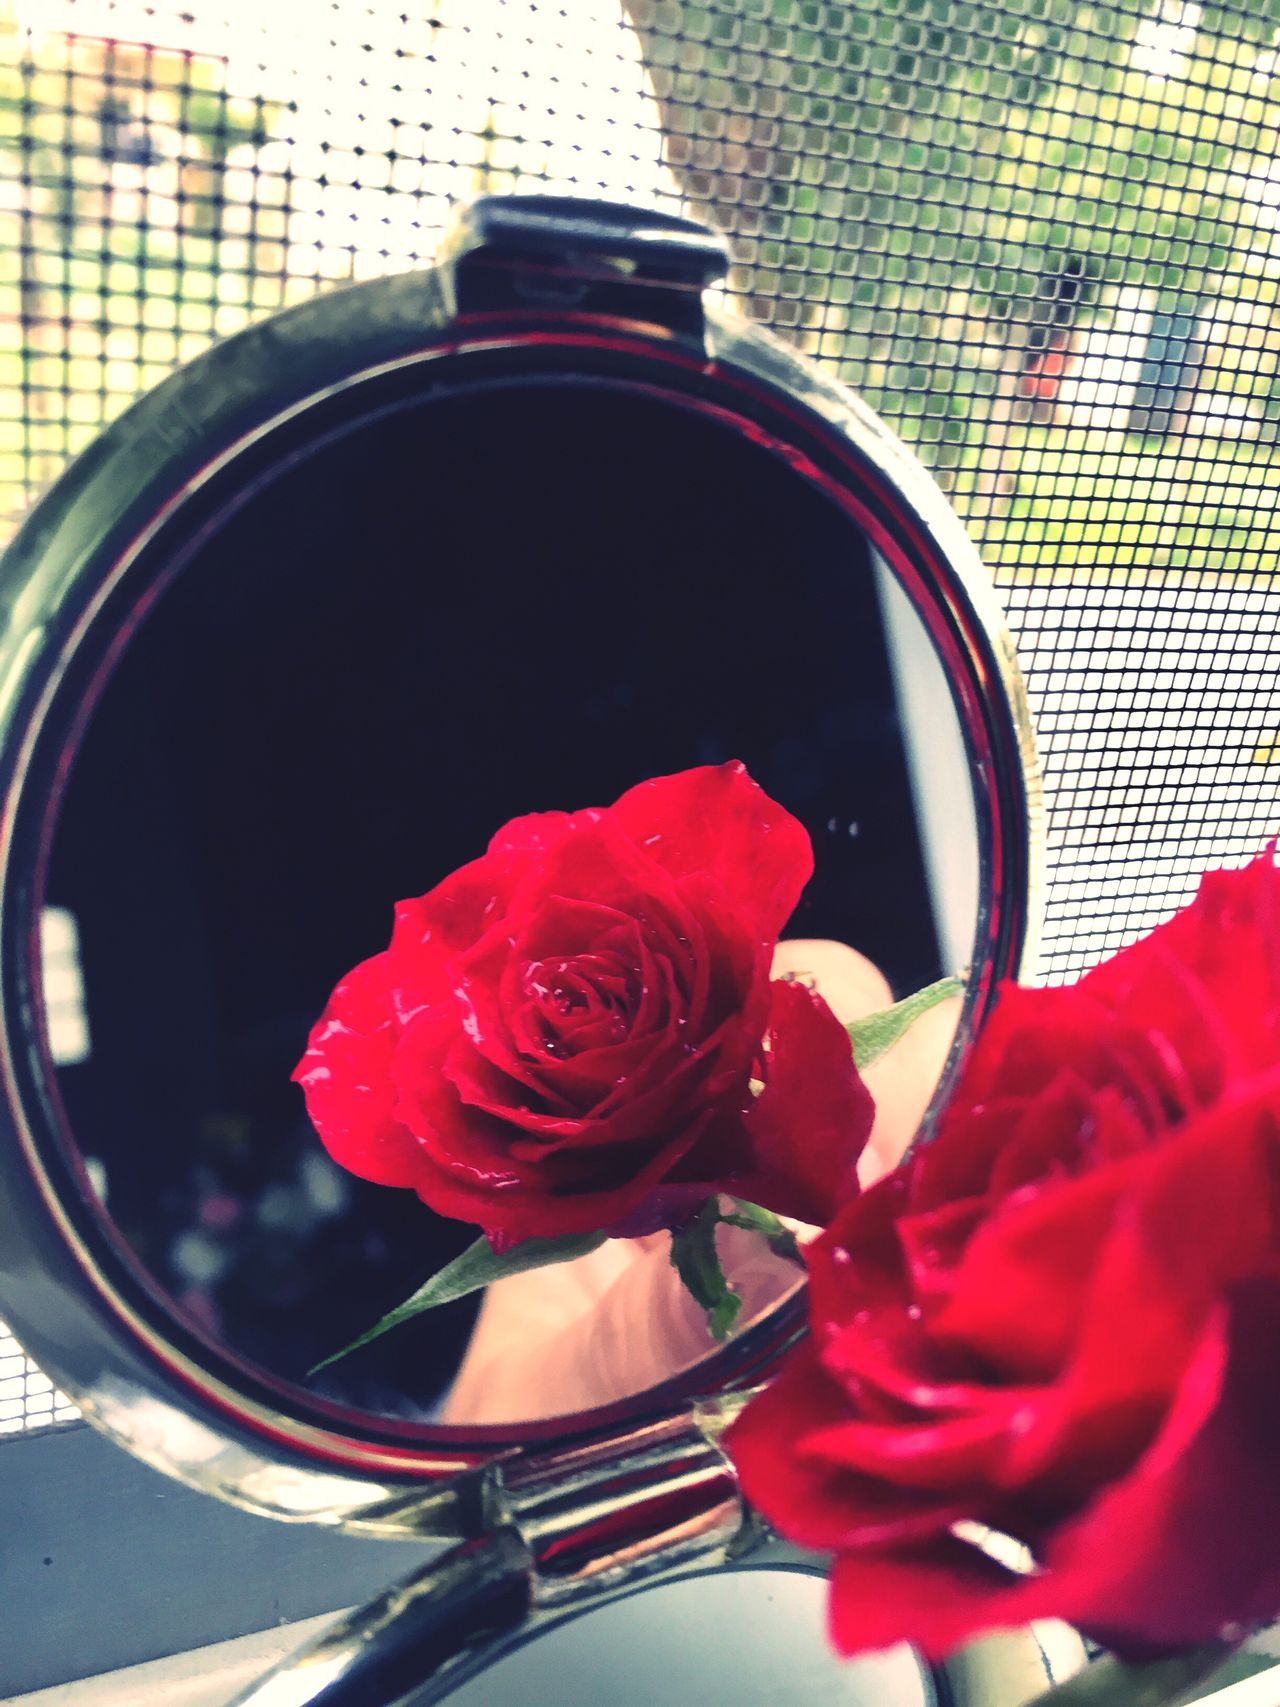 I Love Roses! Red Red Flower Close-up No People Power In Nature Power Of The Moment Mirrorselfie Mirror Reflection Love ♥ Shadow Flower Capture Happy Special Gift Wintertime !!! Snowwhite Mirror Mirror On The Wall ... Who's The Prettiest Of